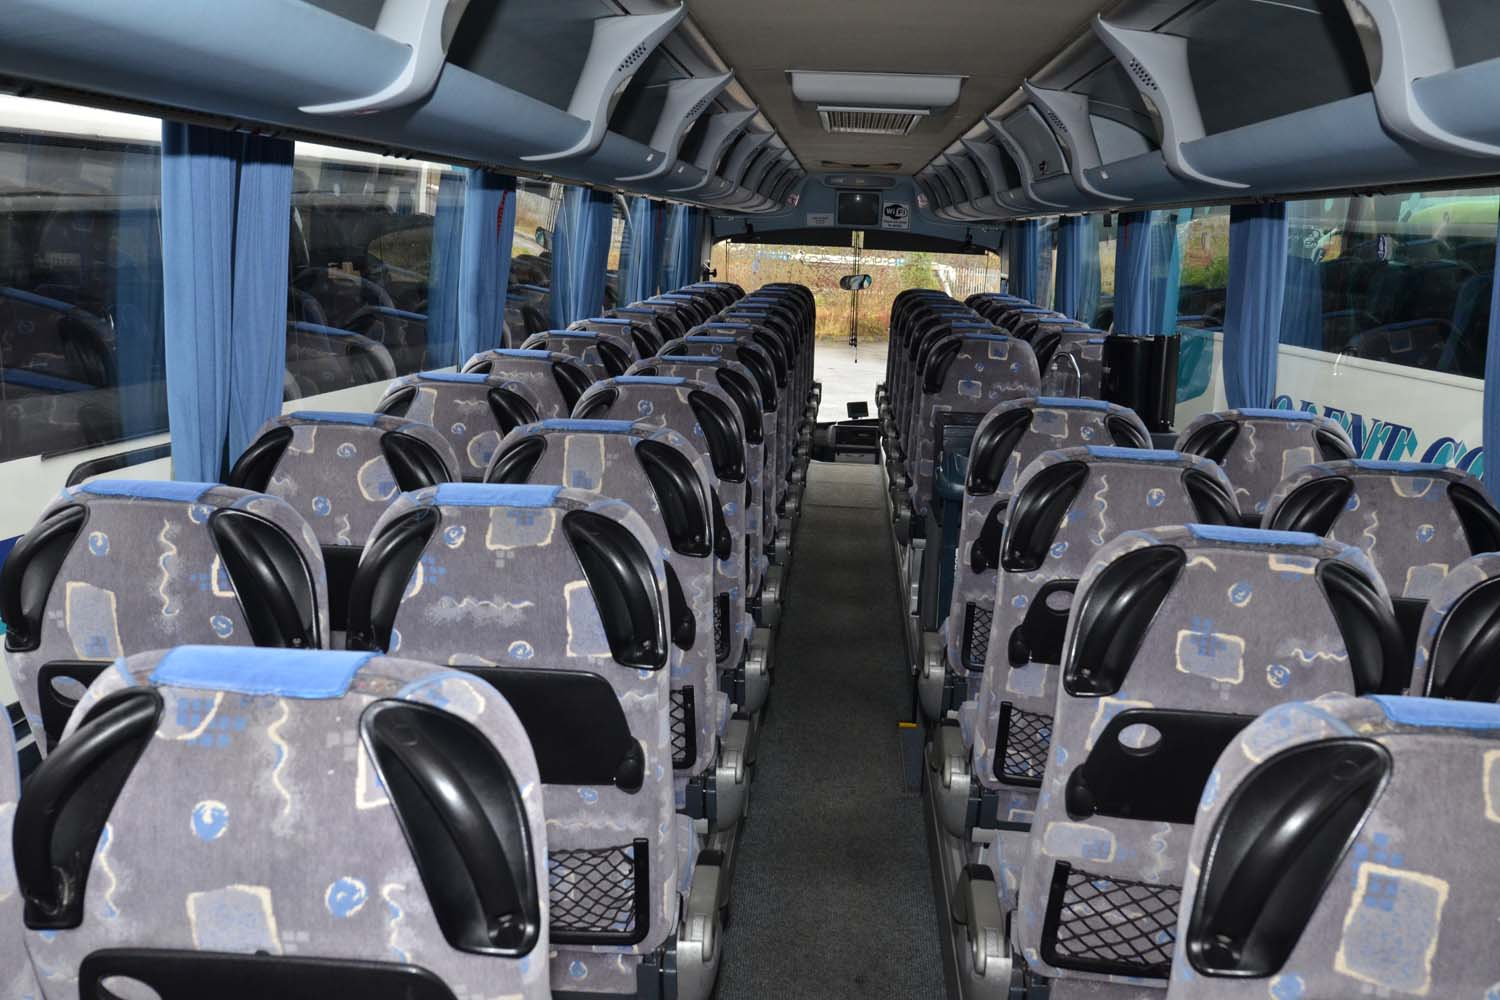 Seats in the buses